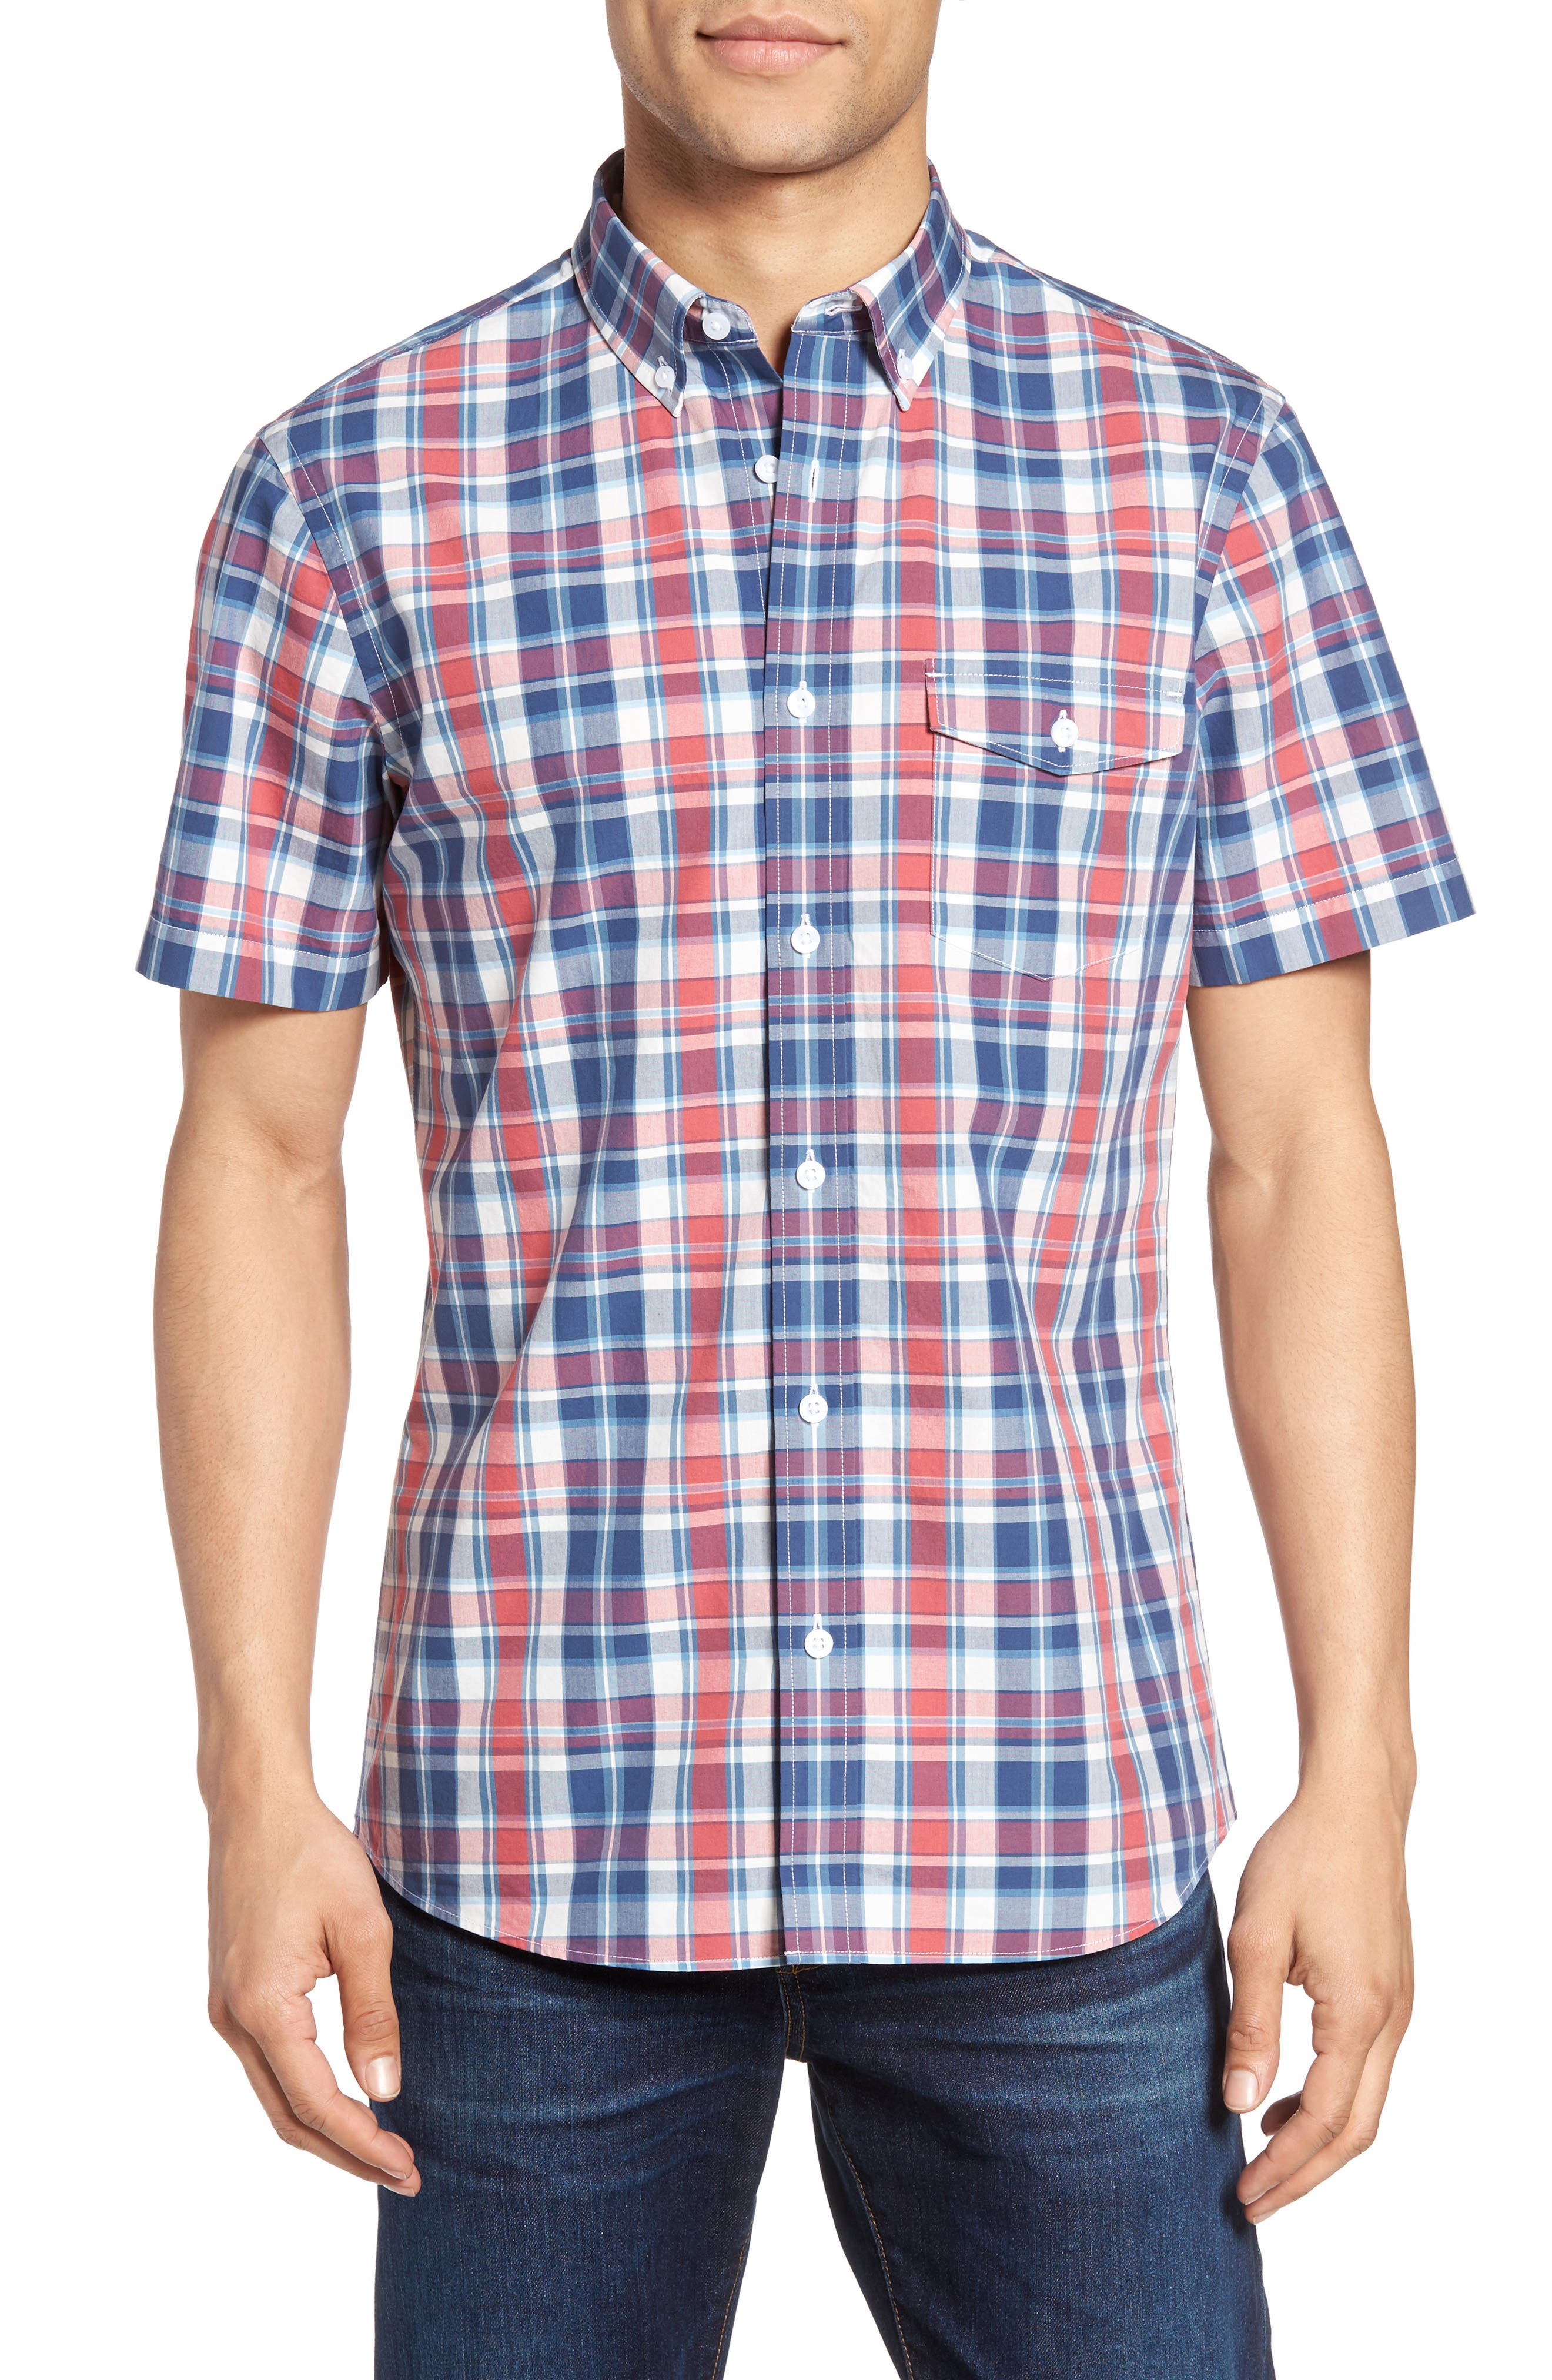 NORDSTROM MENS SHOP Slim Fit Plaid Sport Shirt